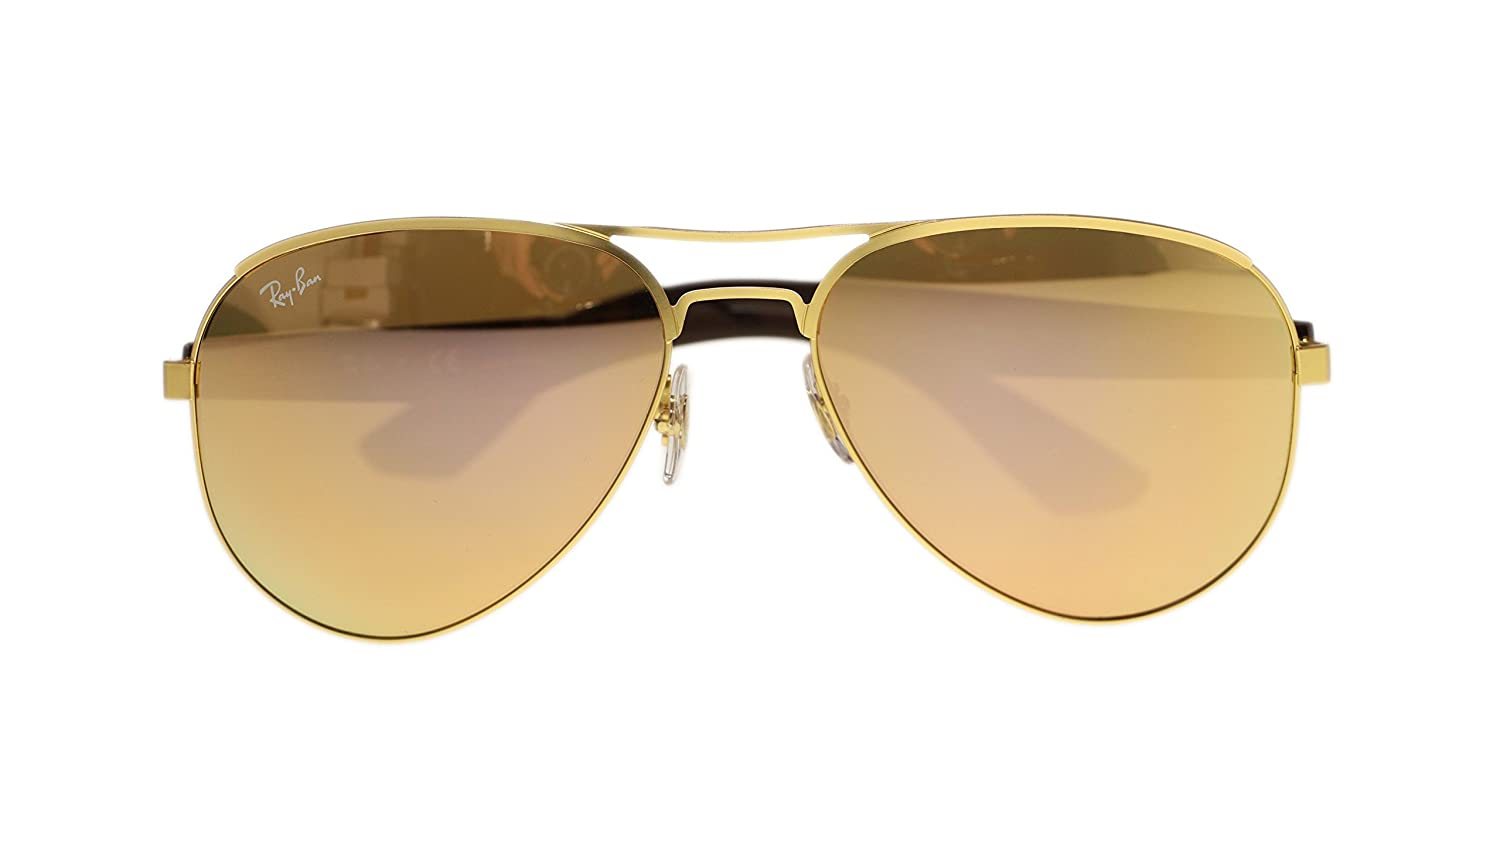 e2d877ee98 Ray Ban Mens Sunglasses RB3523 112 2Y Gold Light Brown Mirror Pink Lens  59mm Authentic  Amazon.co.uk  Clothing